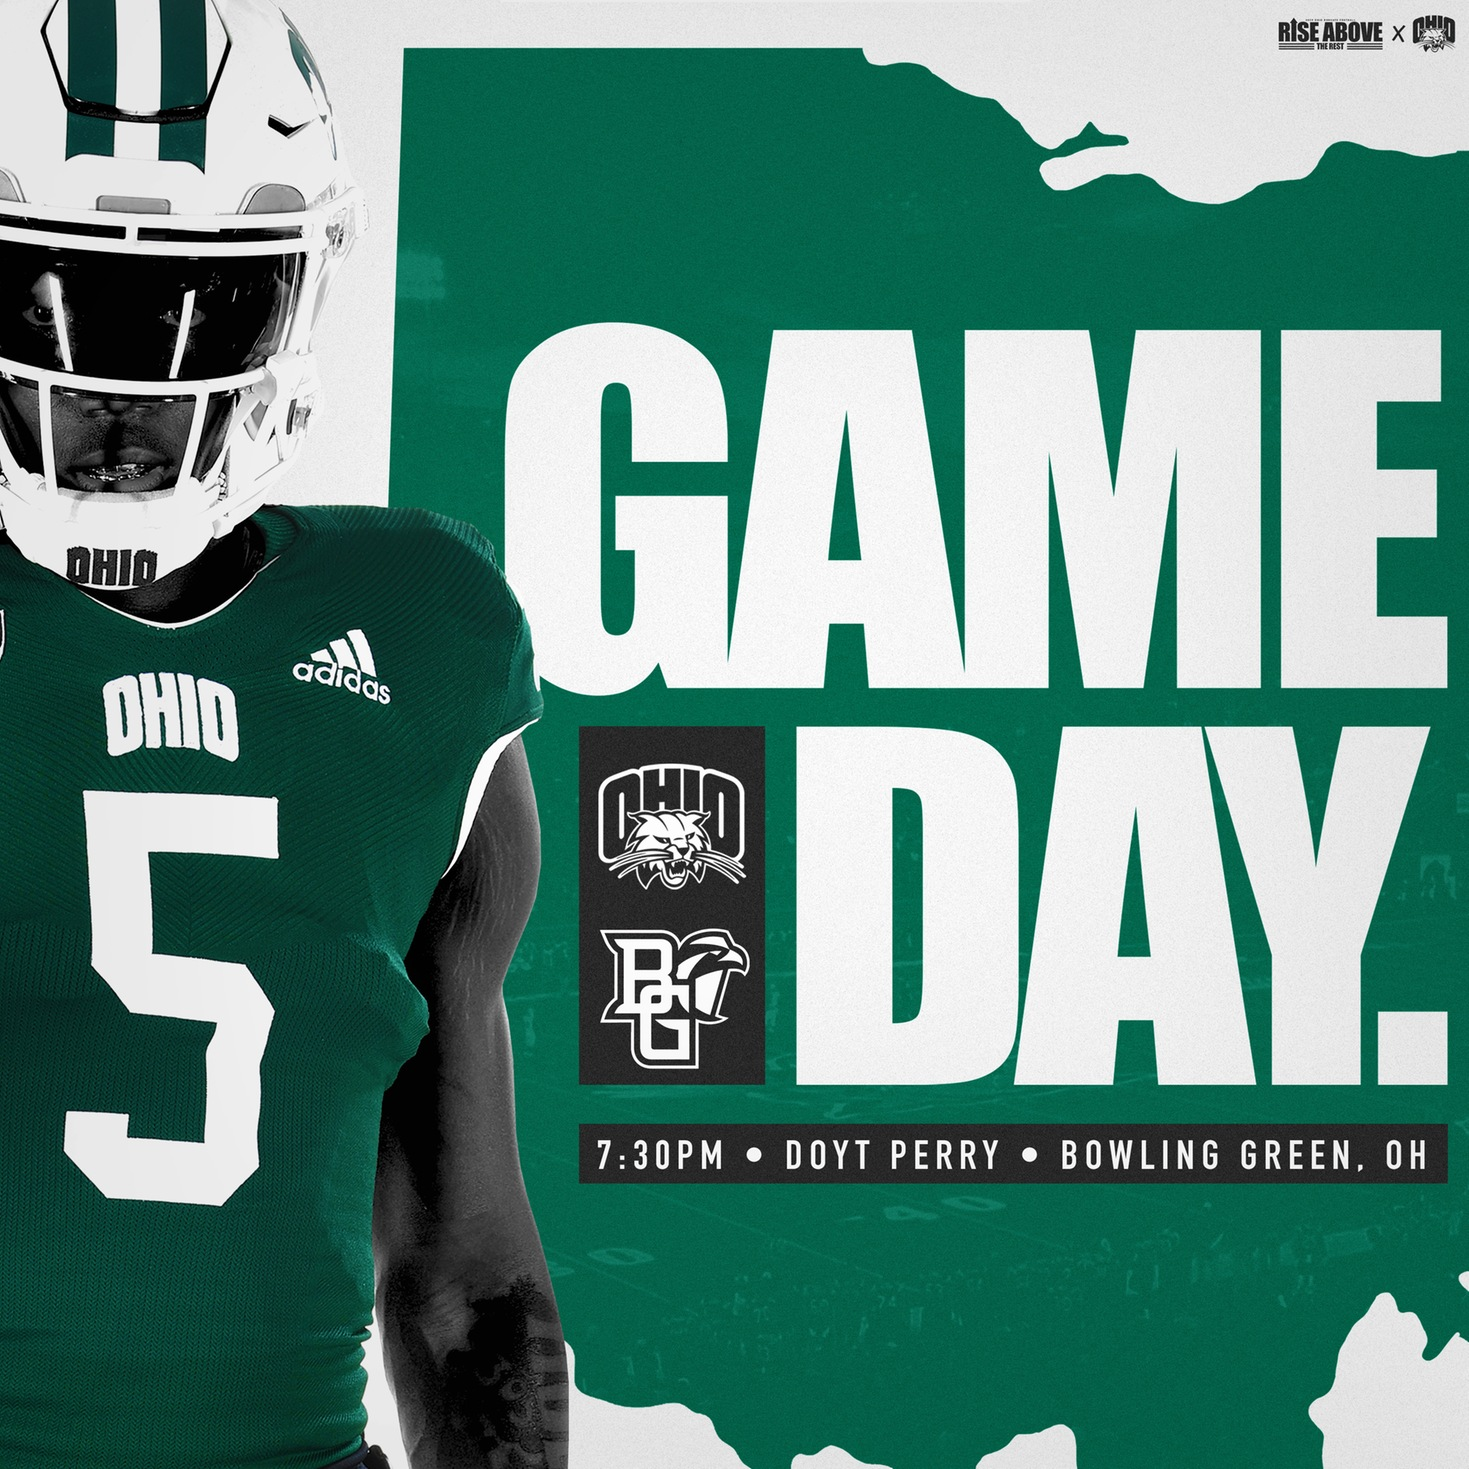 Ohio Football Visits Bowling Green on Tuesday